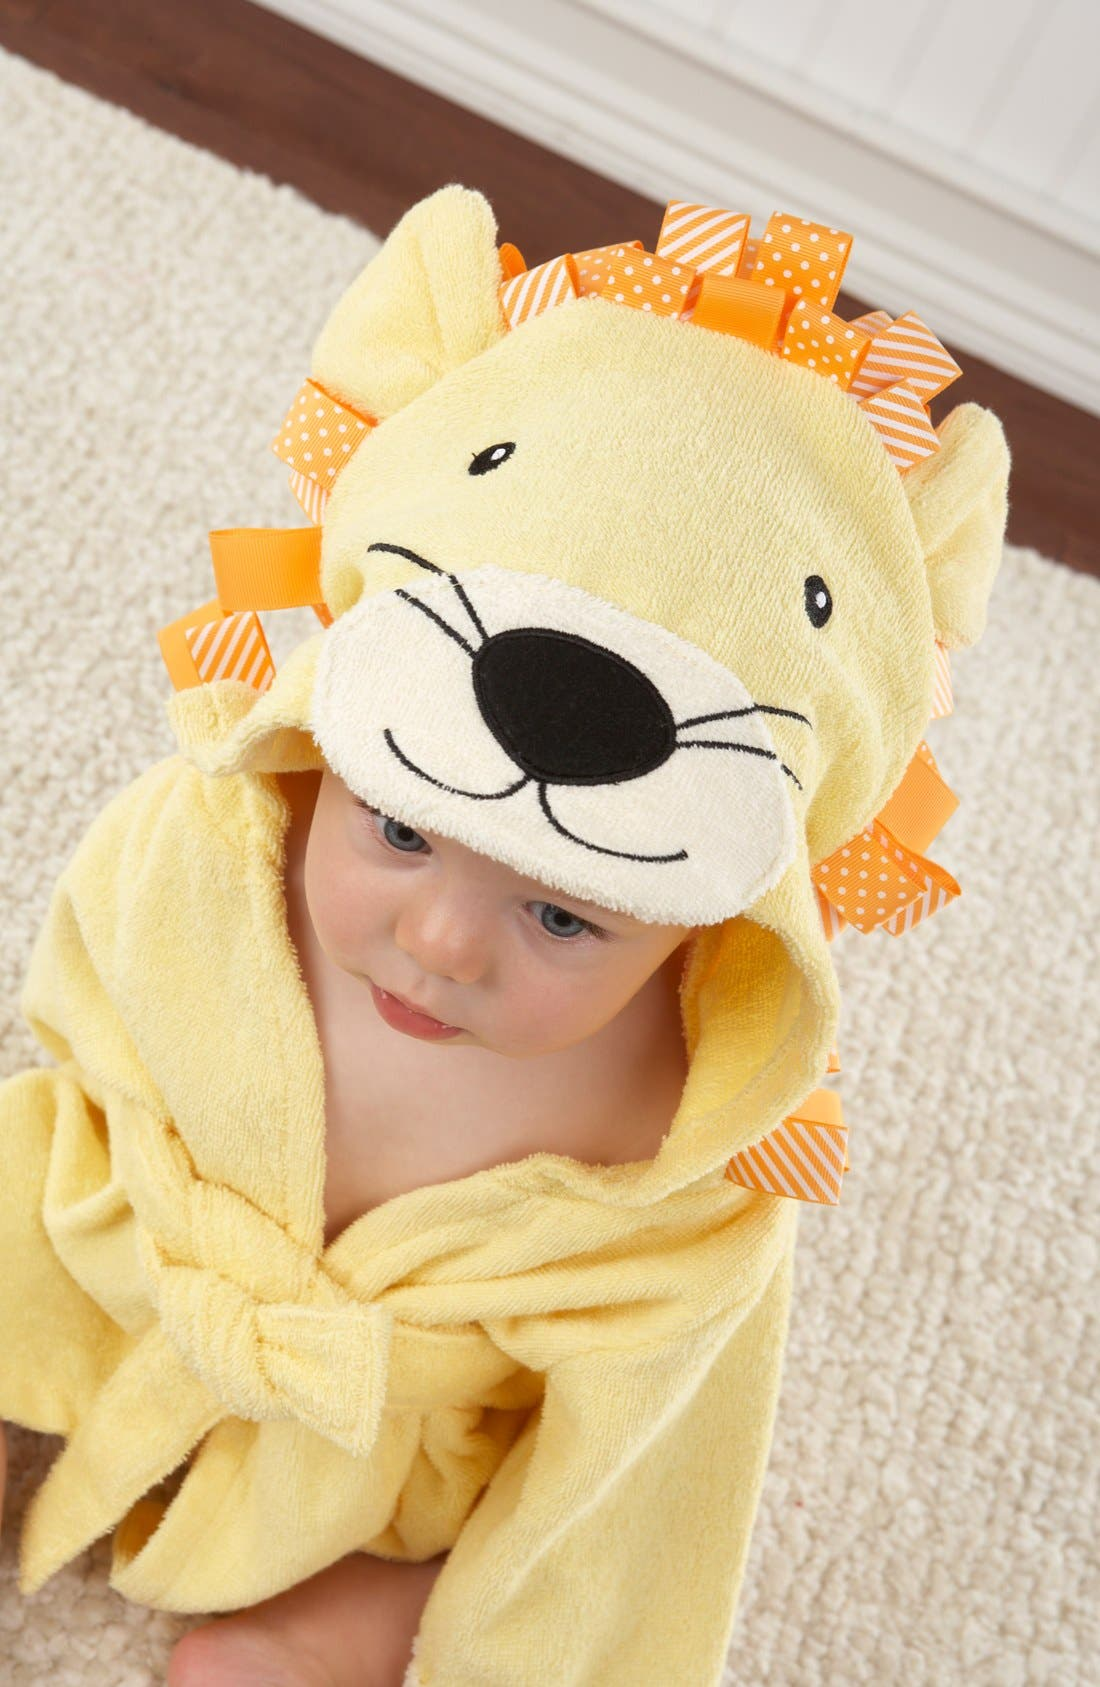 Alternate Image 1 Selected - Baby Aspen 'Big Top Bathtime' Lion Hooded Terry Robe (Baby)